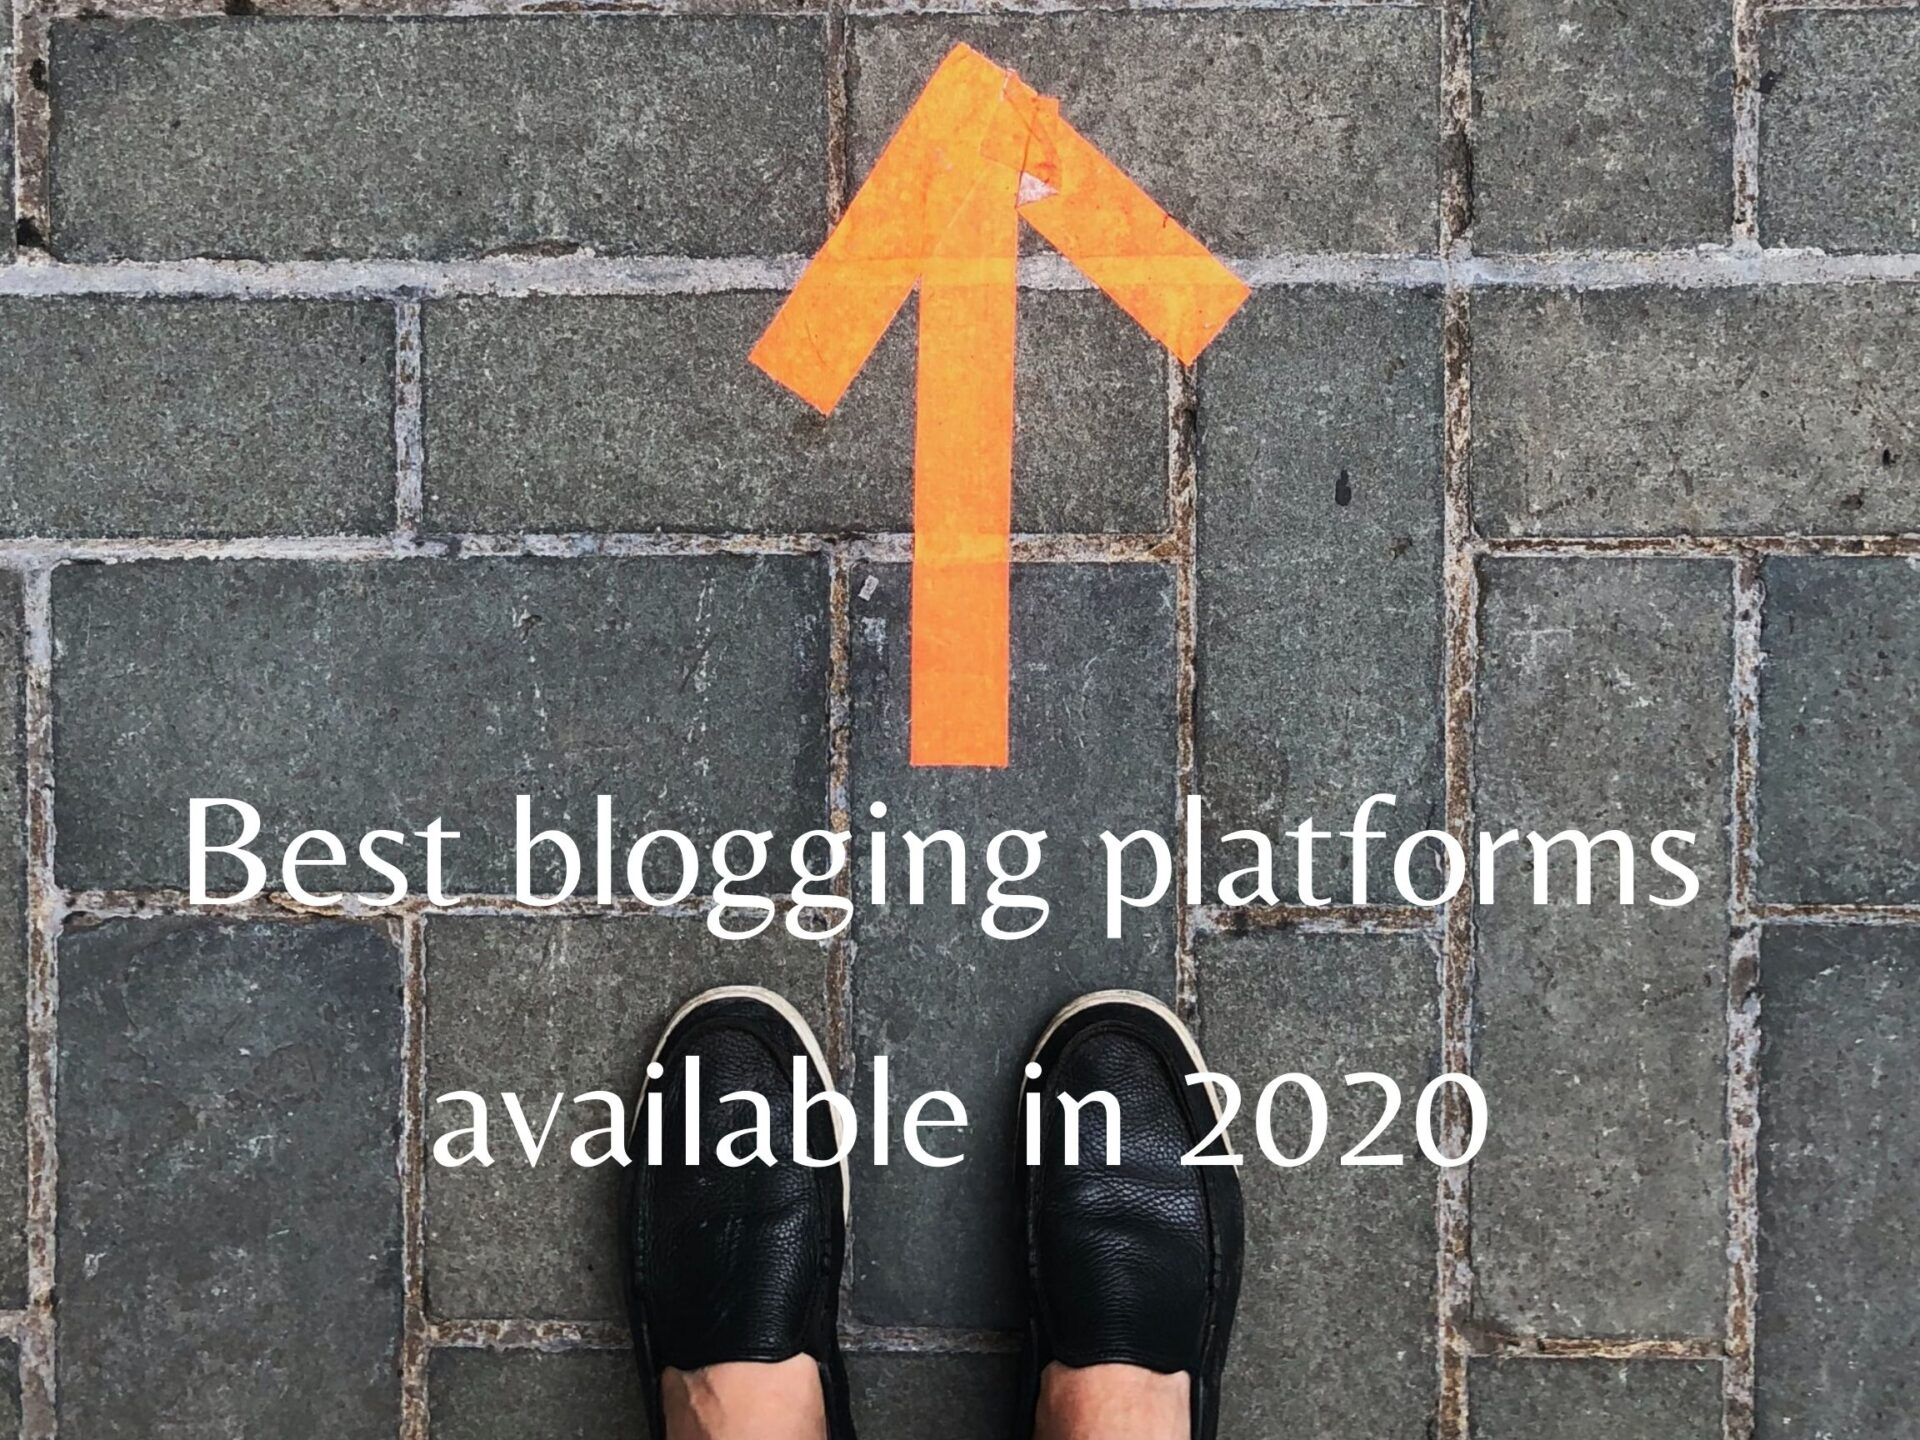 What are the best blogging platforms available in 2020